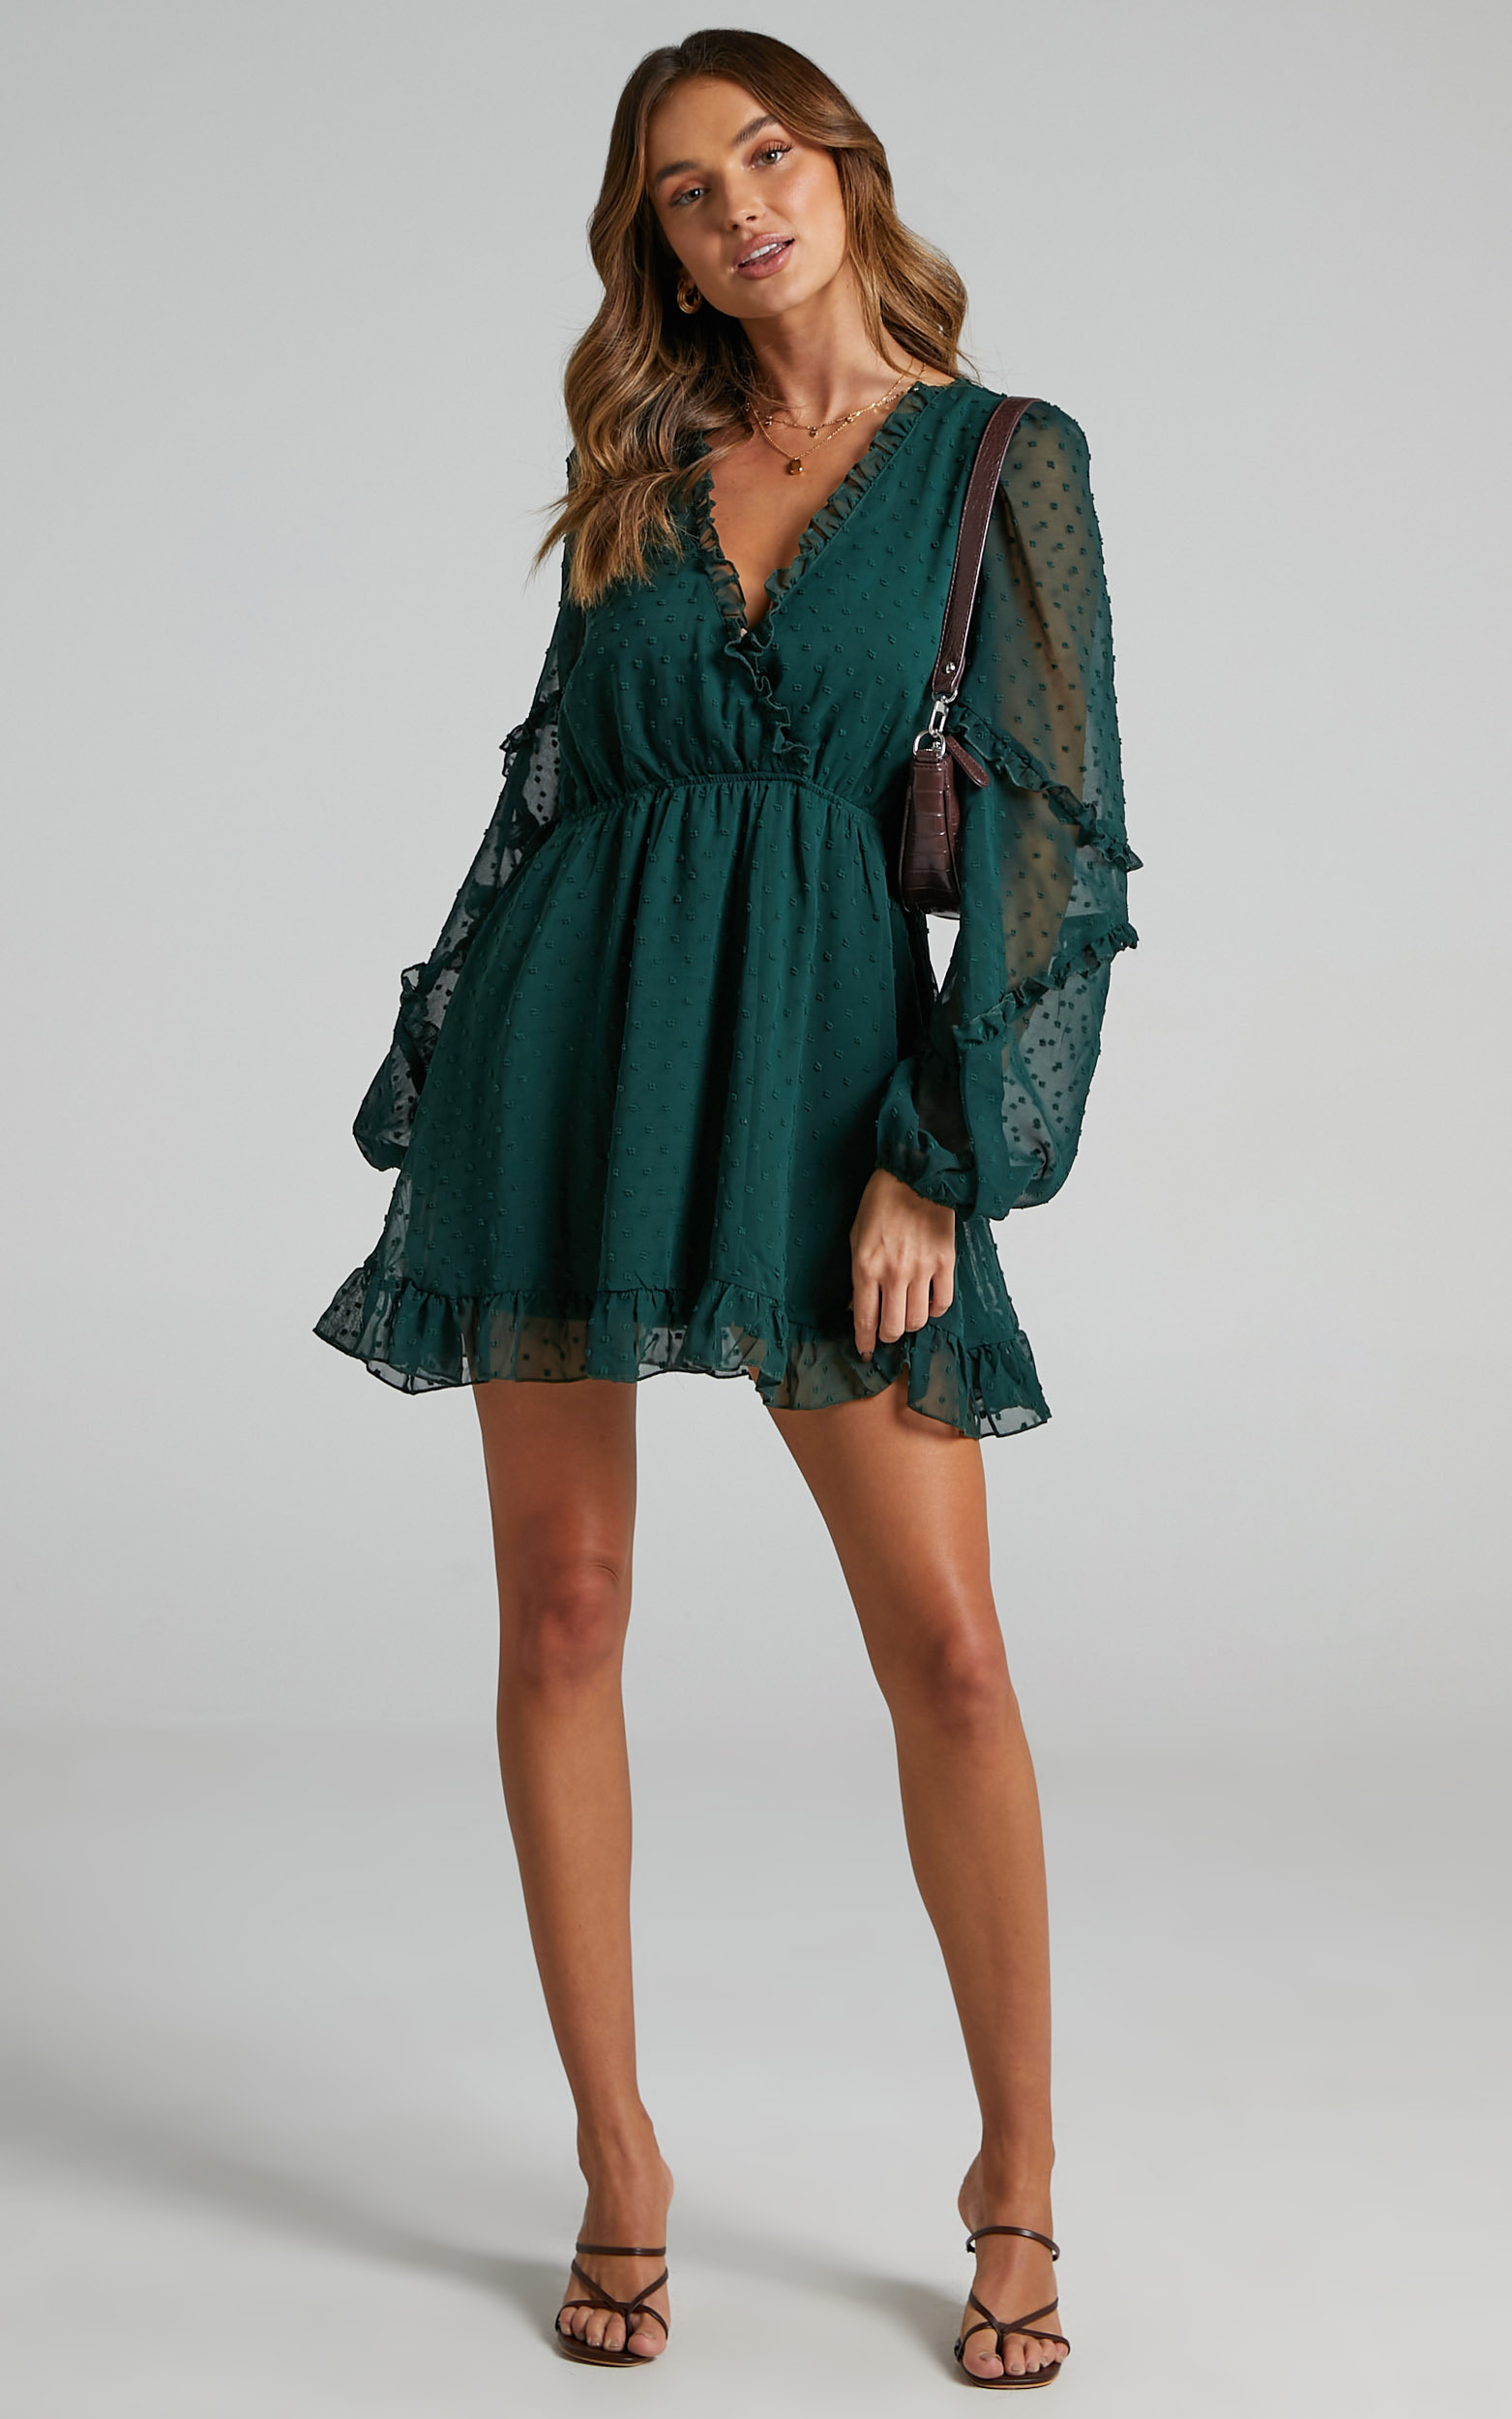 Sancha Long Sleeve Frill Mini Dress in Emerald - 06, GRN2, hi-res image number null